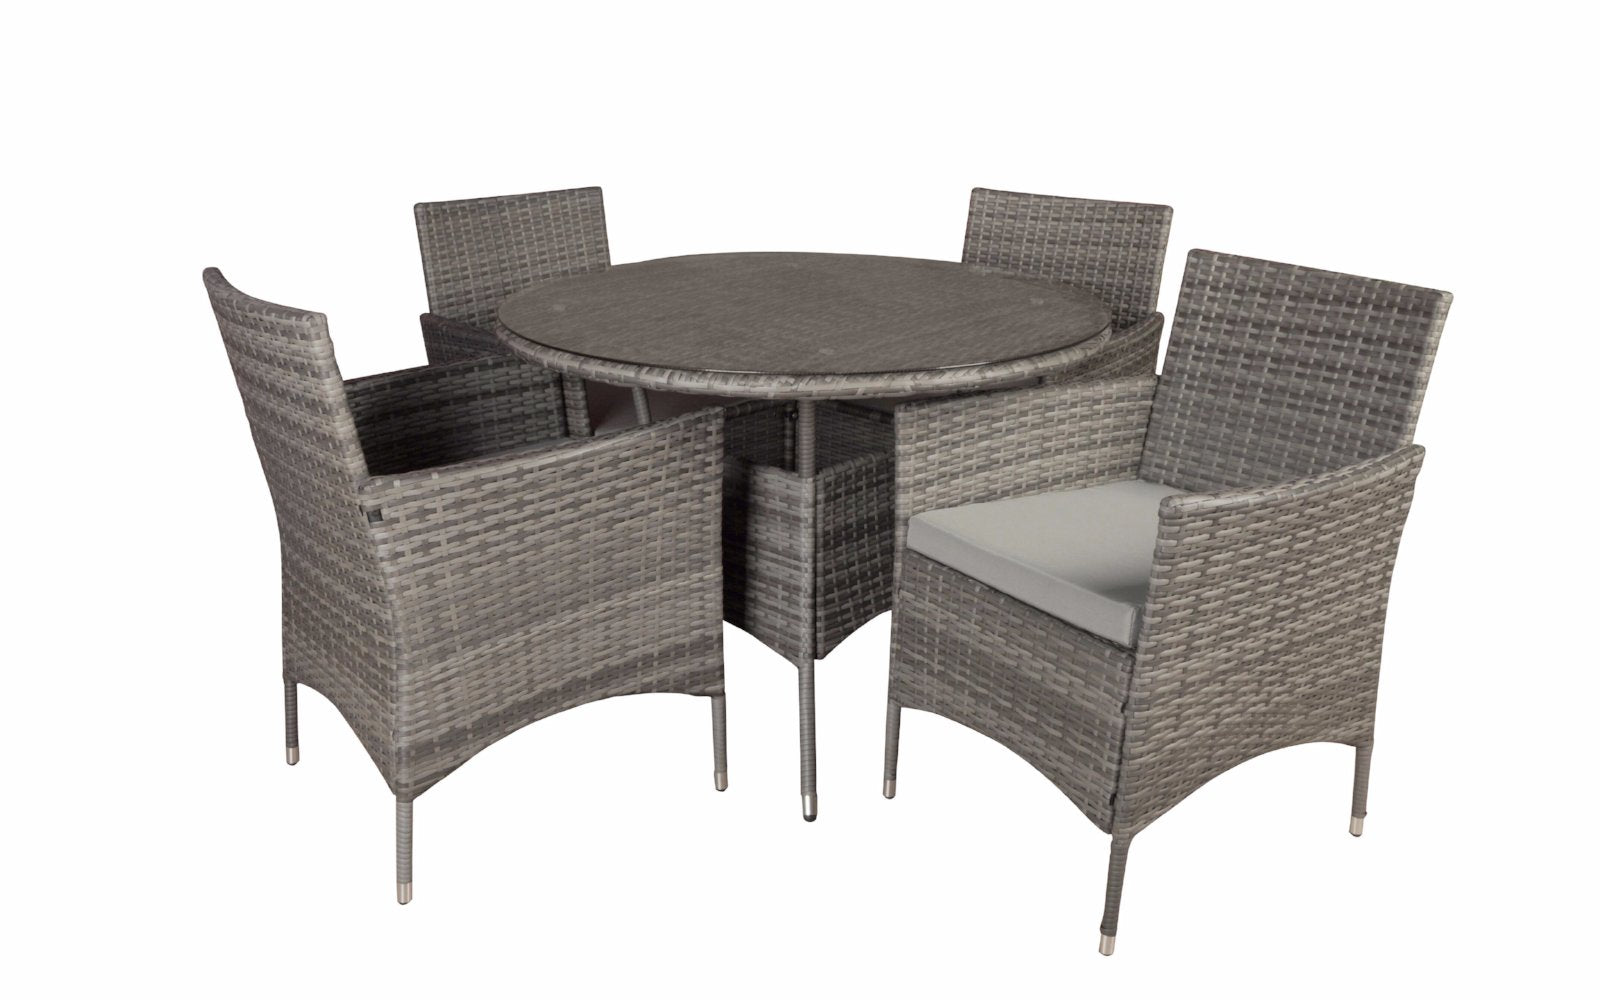 outdoor wood dining table. Malibu Outdoor Dining Table And Chairs Set Grey Wood